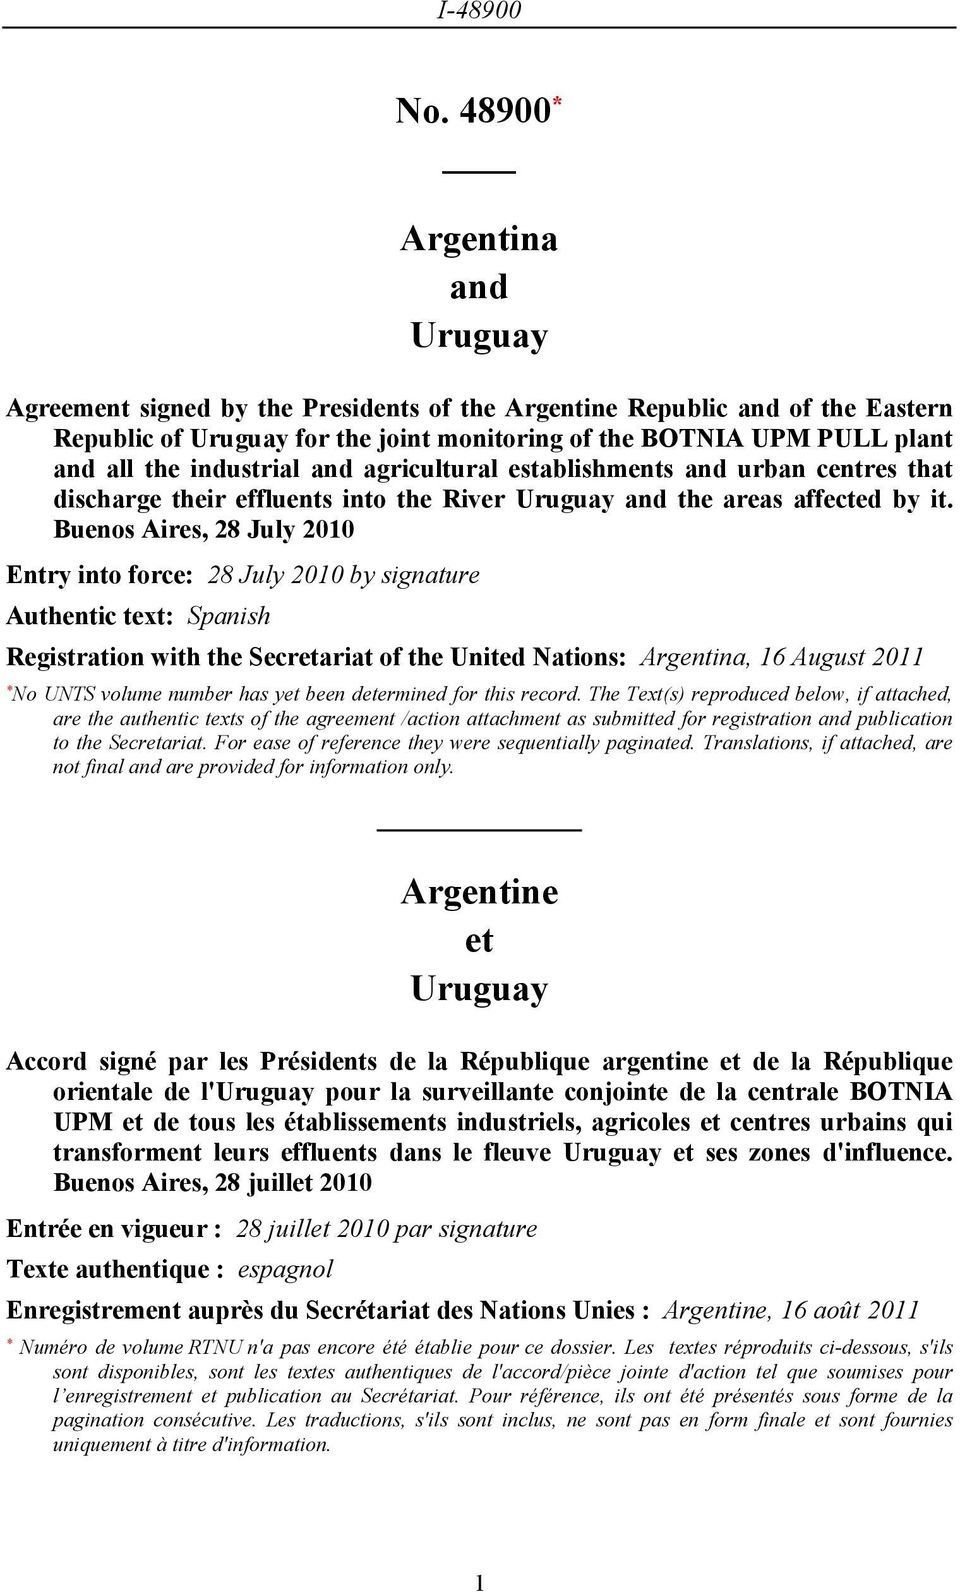 Buenos Aires, 28 July 2010 Entry into force: 28 July 2010 by signature Authentic text: Spanish Registration with the Secretariat of the United Nations: Argentina, 16 August 2011 * No UNTS volume